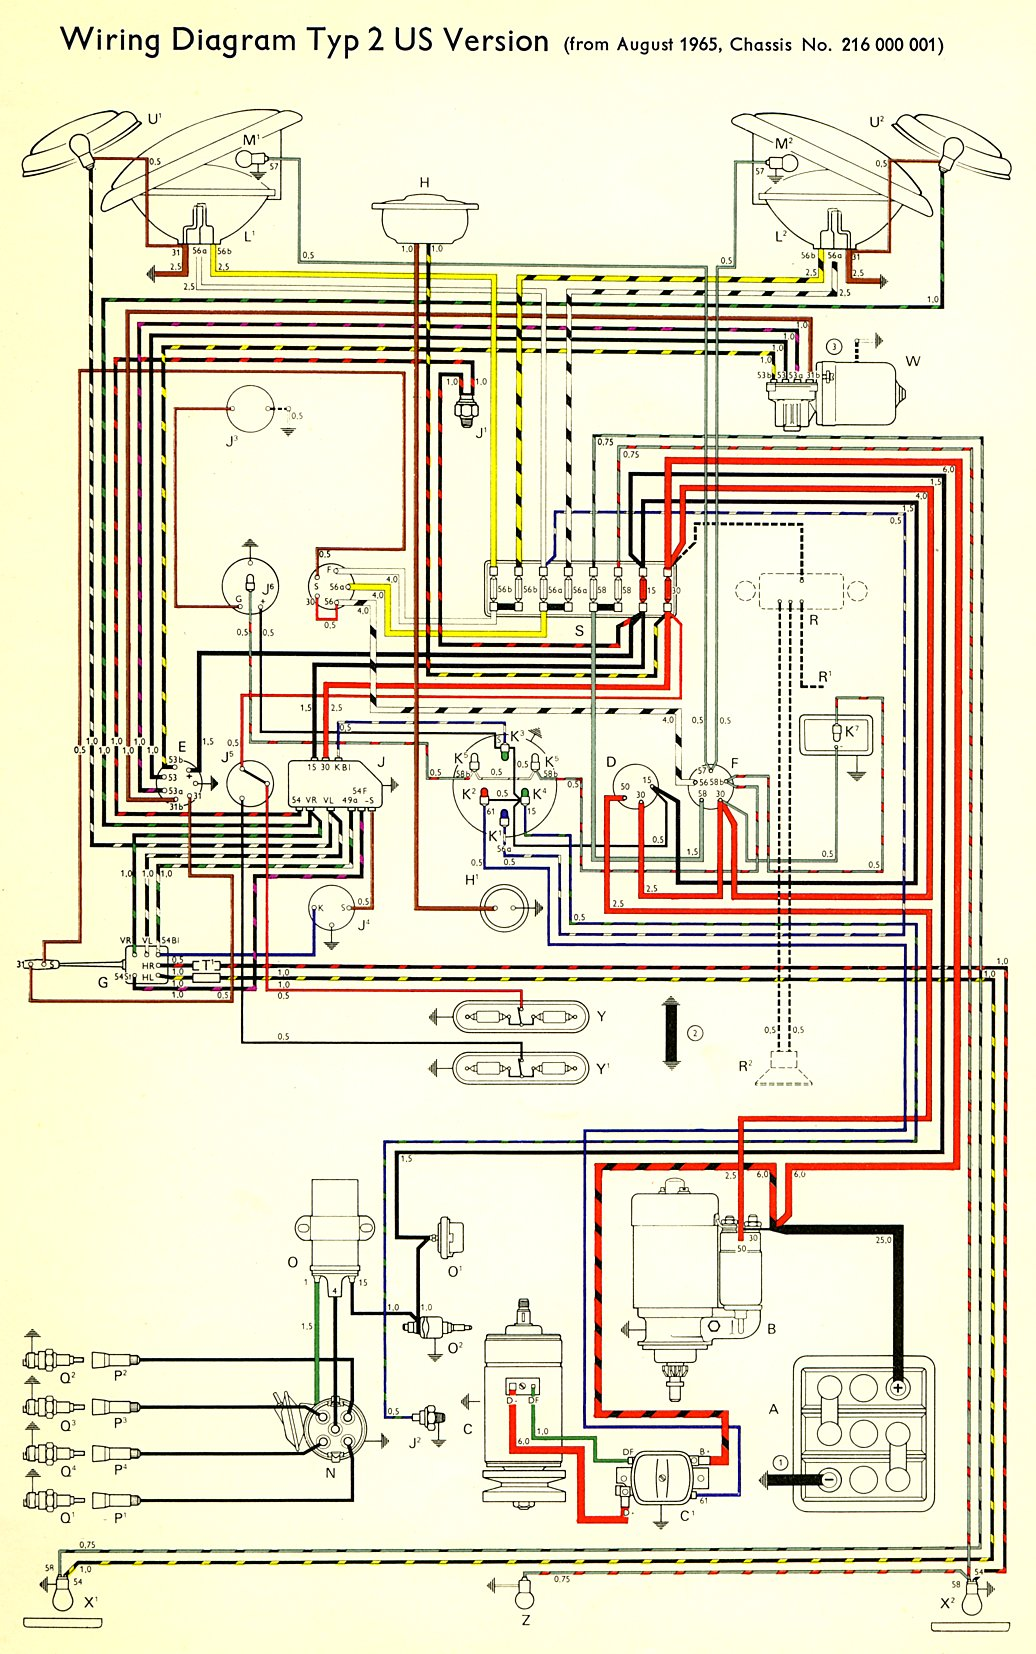 1966 Mustang Dash Wiring Diagram Free Picture Will Ford Color Data Schema Rh Site De Joueurs Com 1965